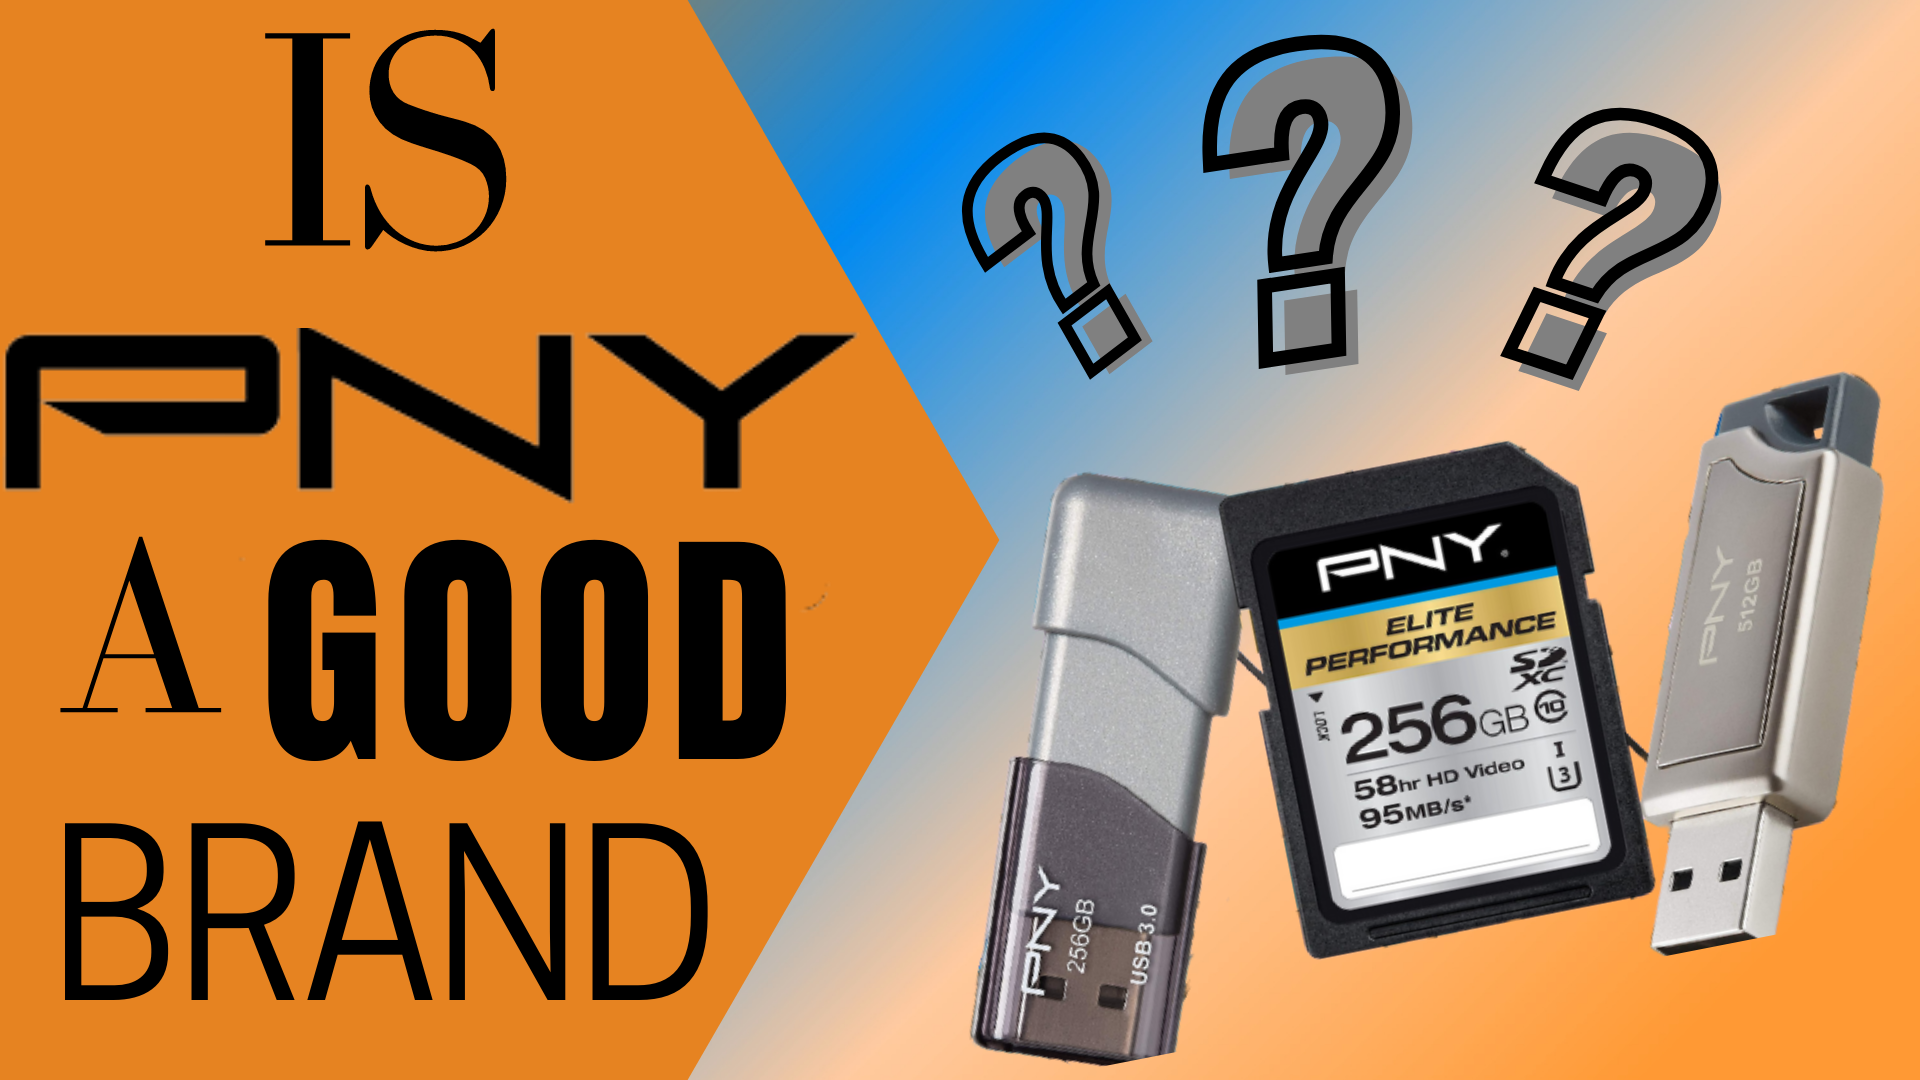 Is PNY a good brand?